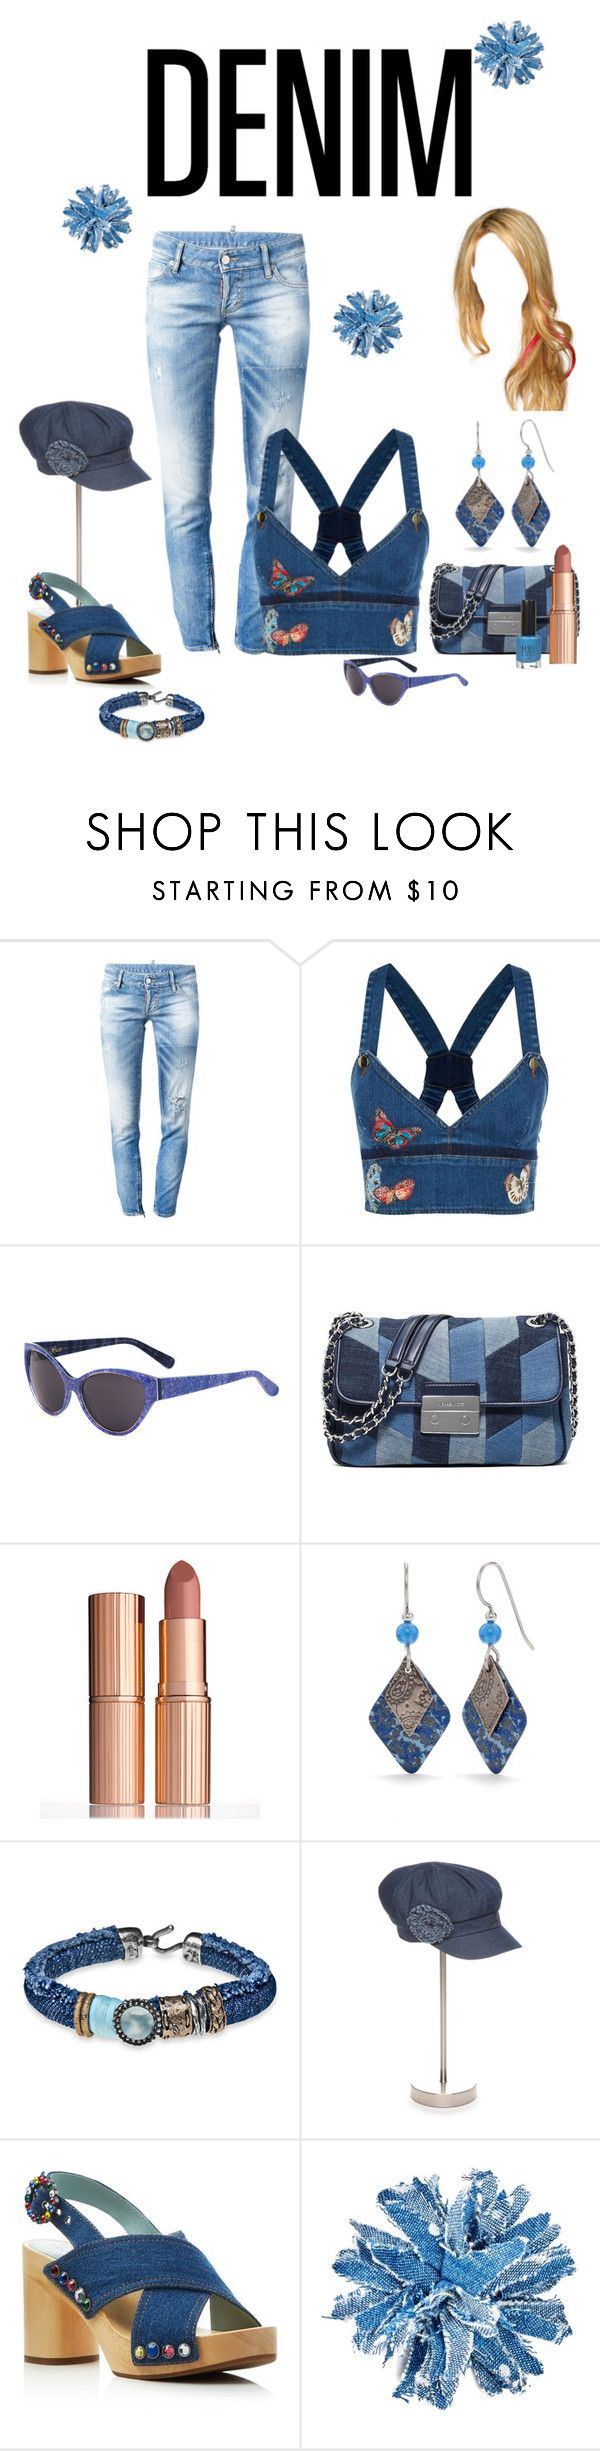 """""""Untitled #3142"""" by empathetic ❤ liked on Polyvore featuring Dsquared2, Valentino, Heidi London, MICHAEL Michael Kors, Charlotte Tilbury, Silver Forest, Platadepalo, New Directions, Marc Jacobs and Studio 1735"""